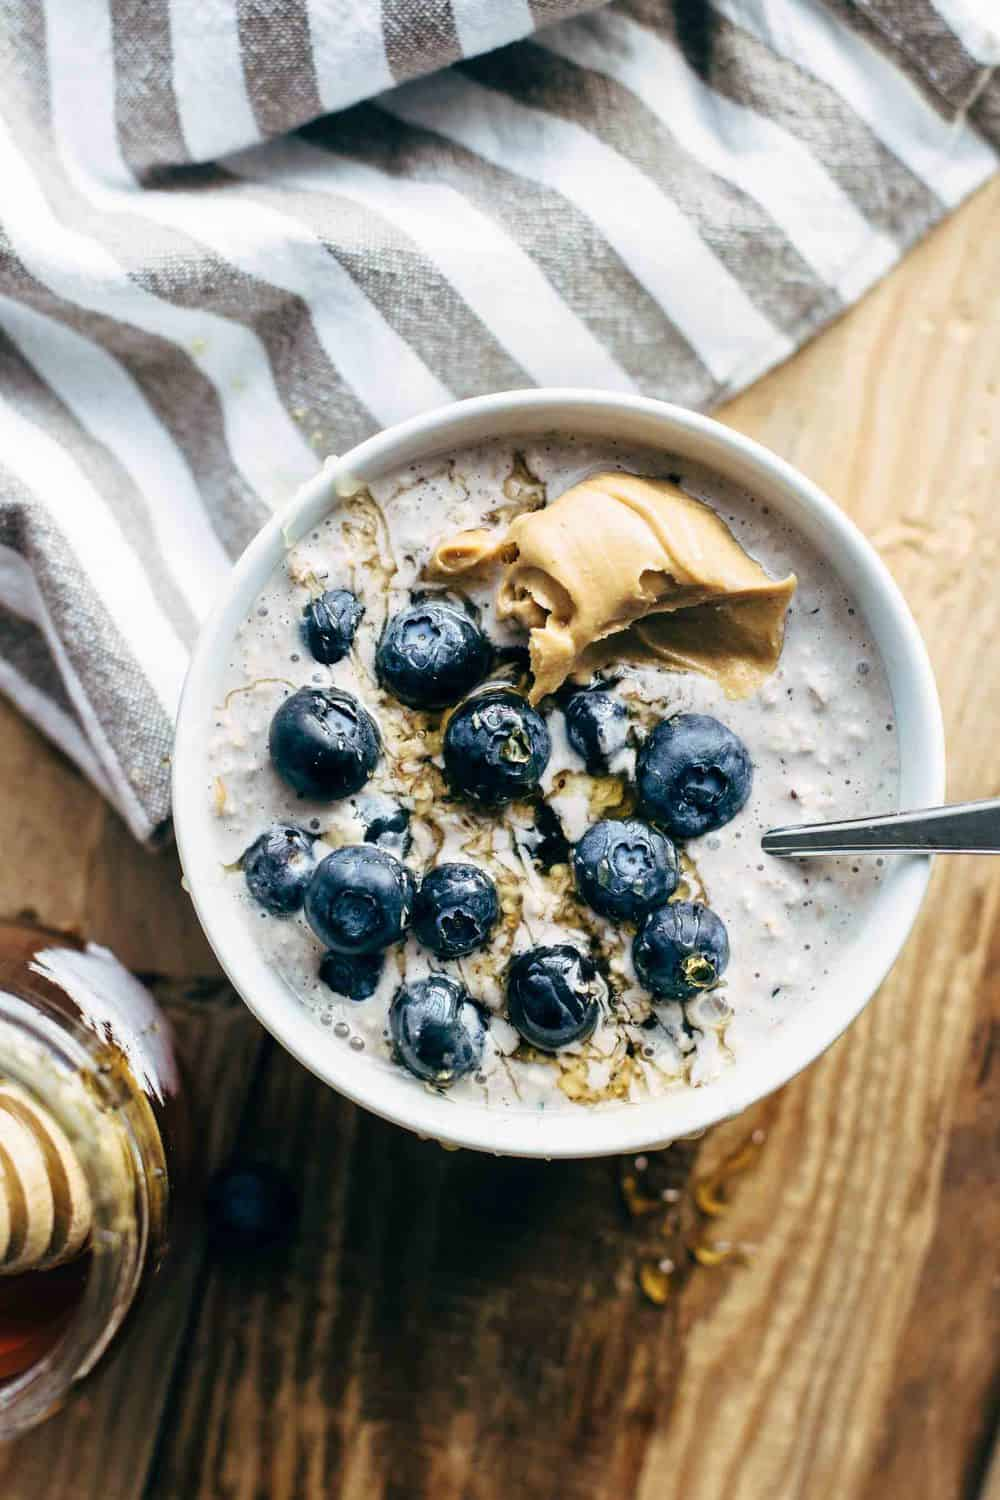 Start your 24-hour interval amongst these Blueberry Cream Cheese Overnight Oats Blueberry Cream Cheese Overnight Oats